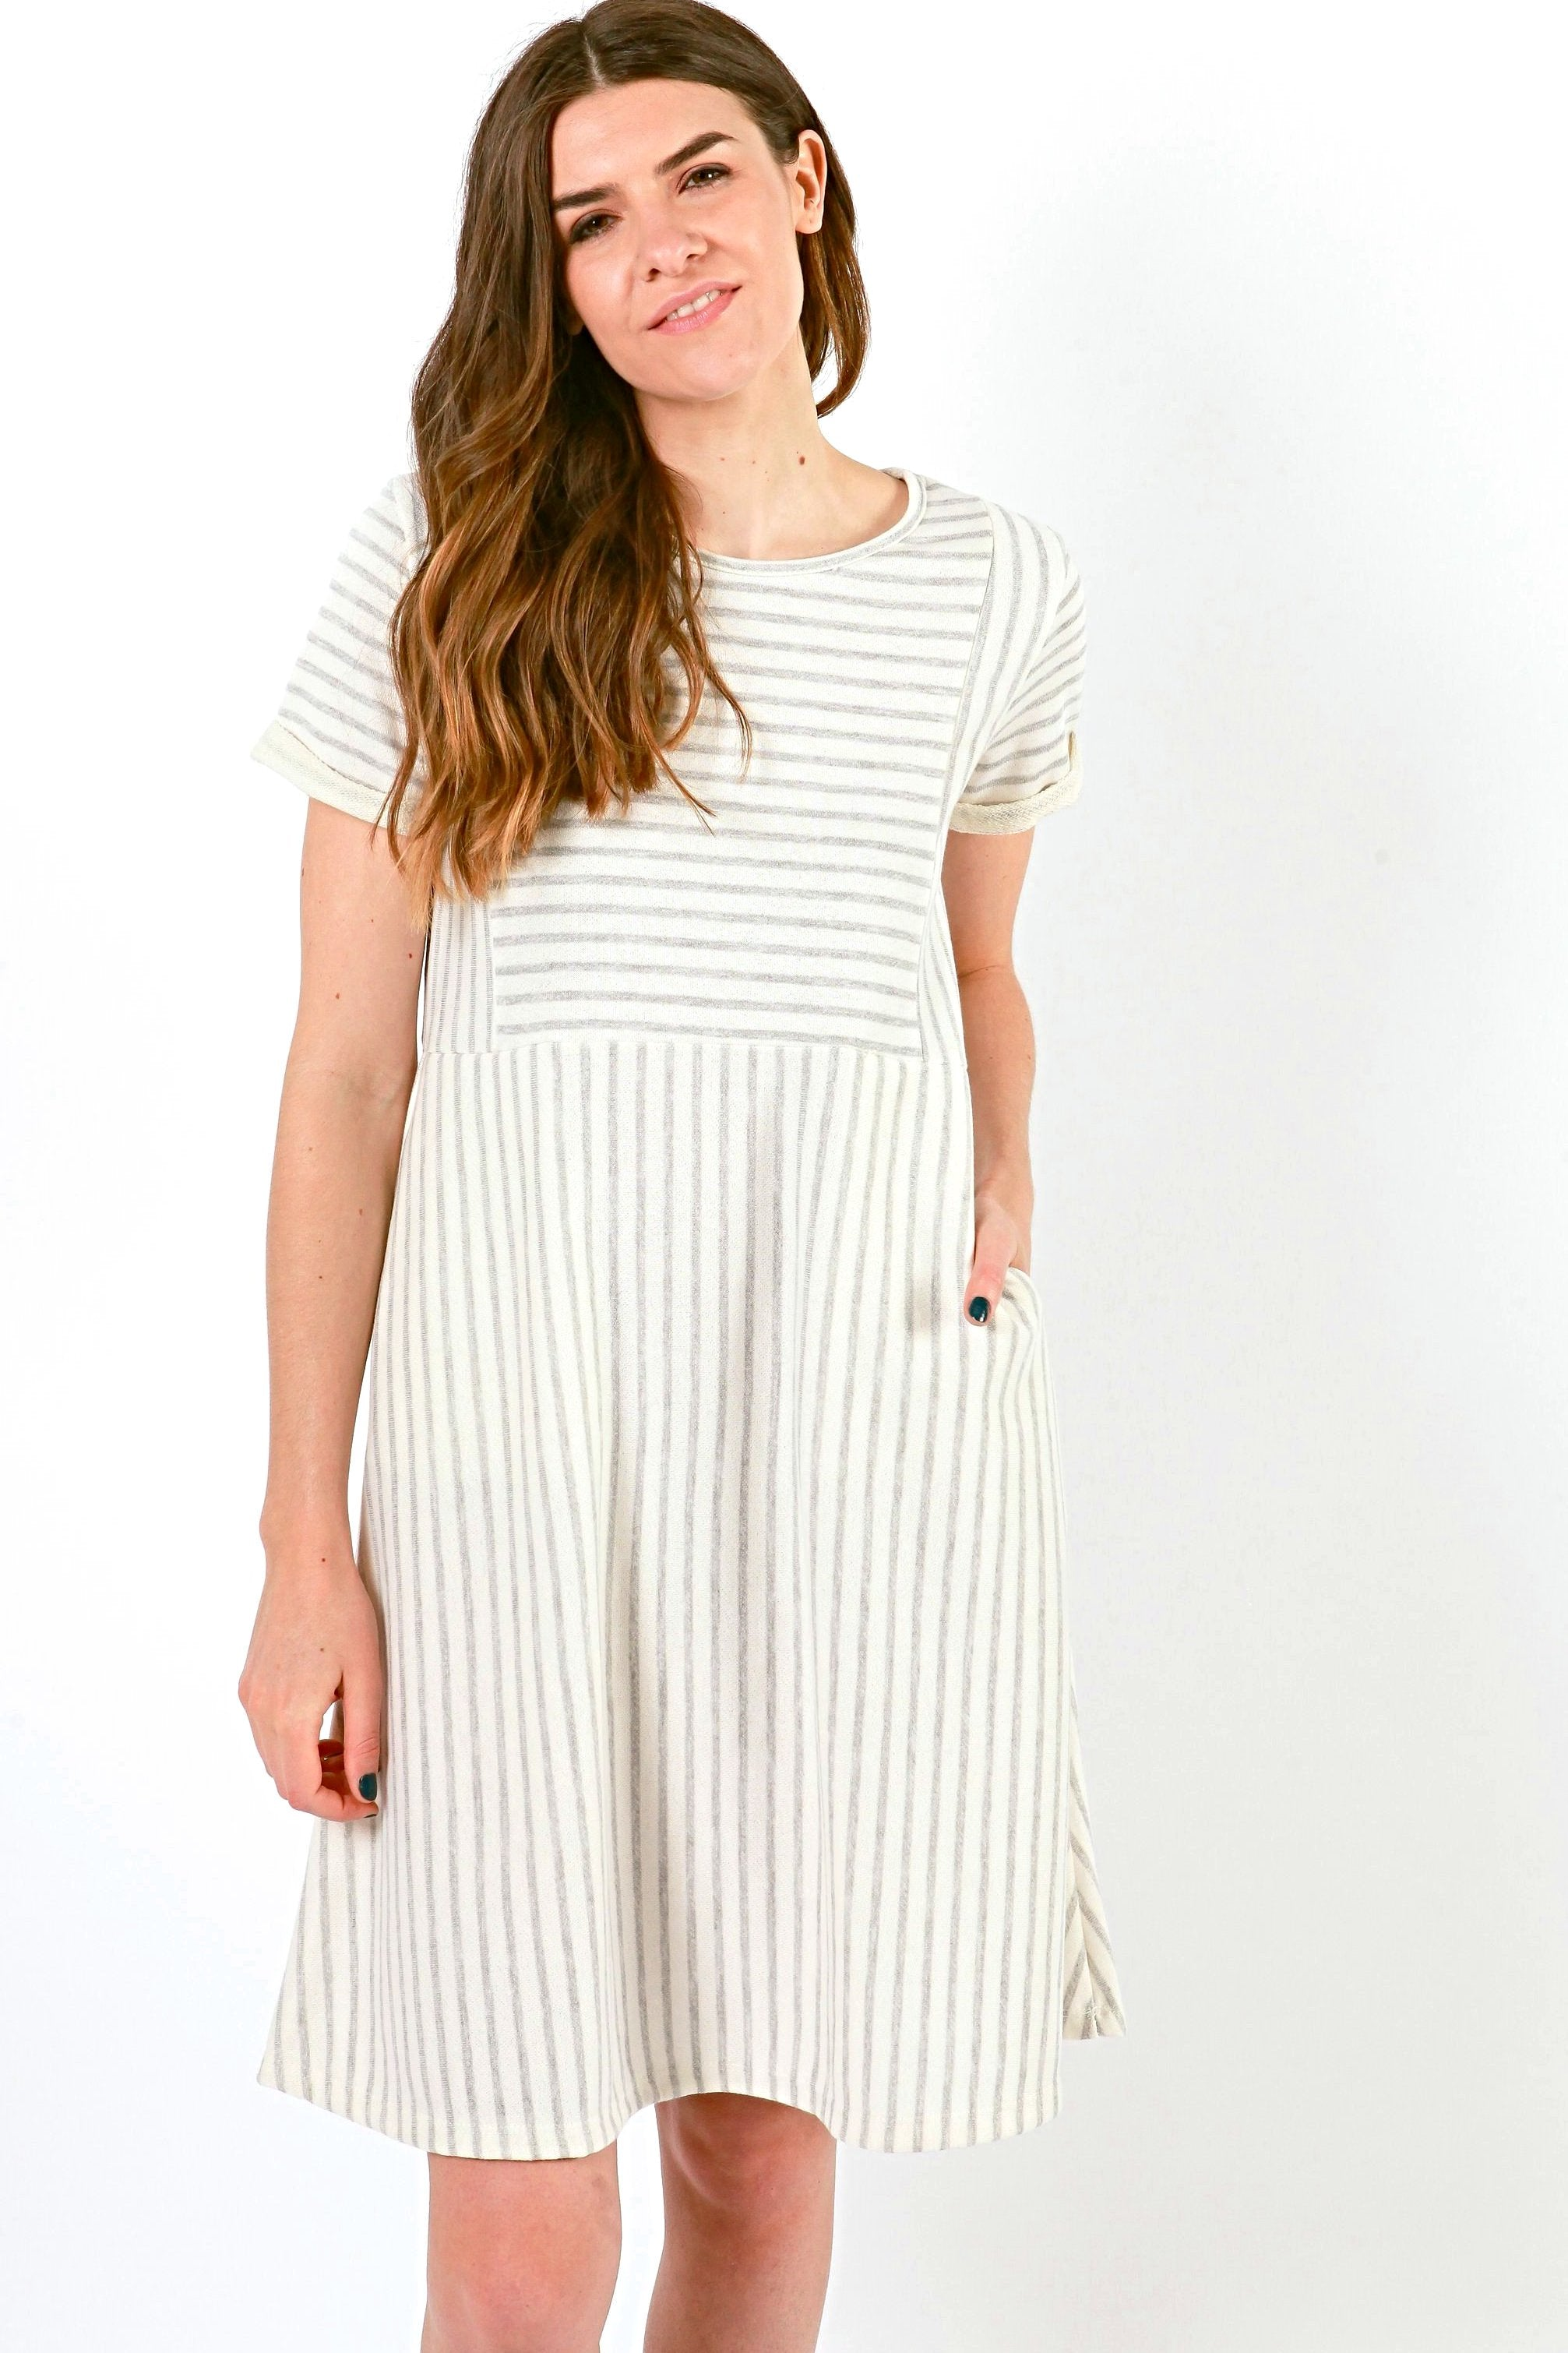 Sydney Striped Dress